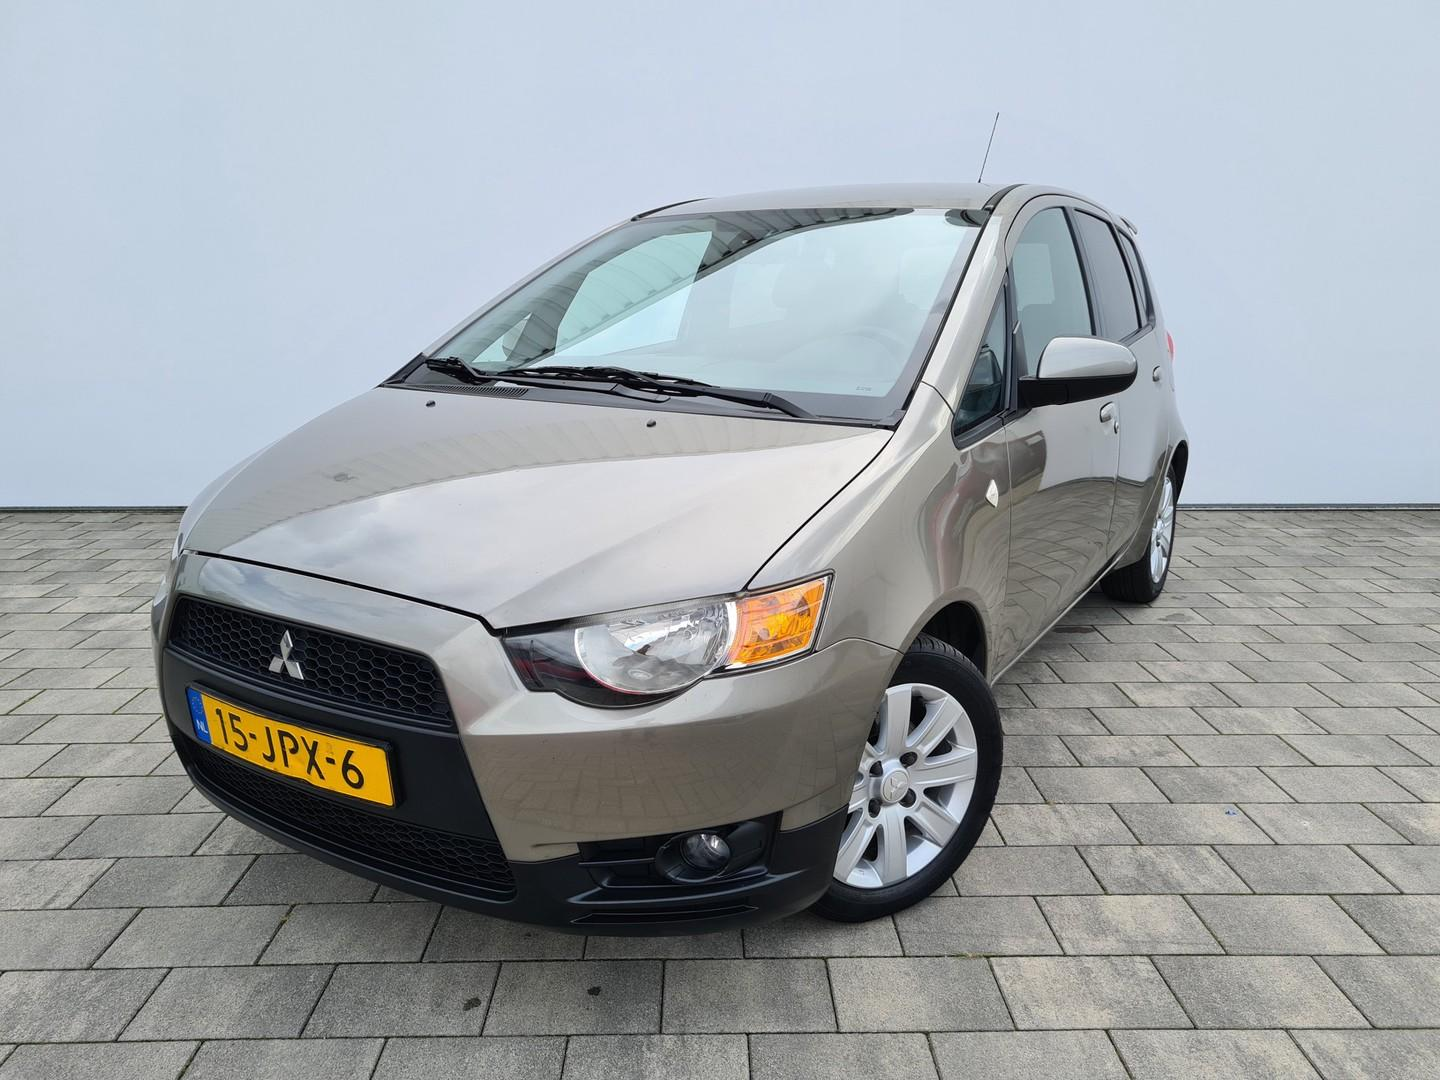 Mitsubishi Colt 1.3 intro edition